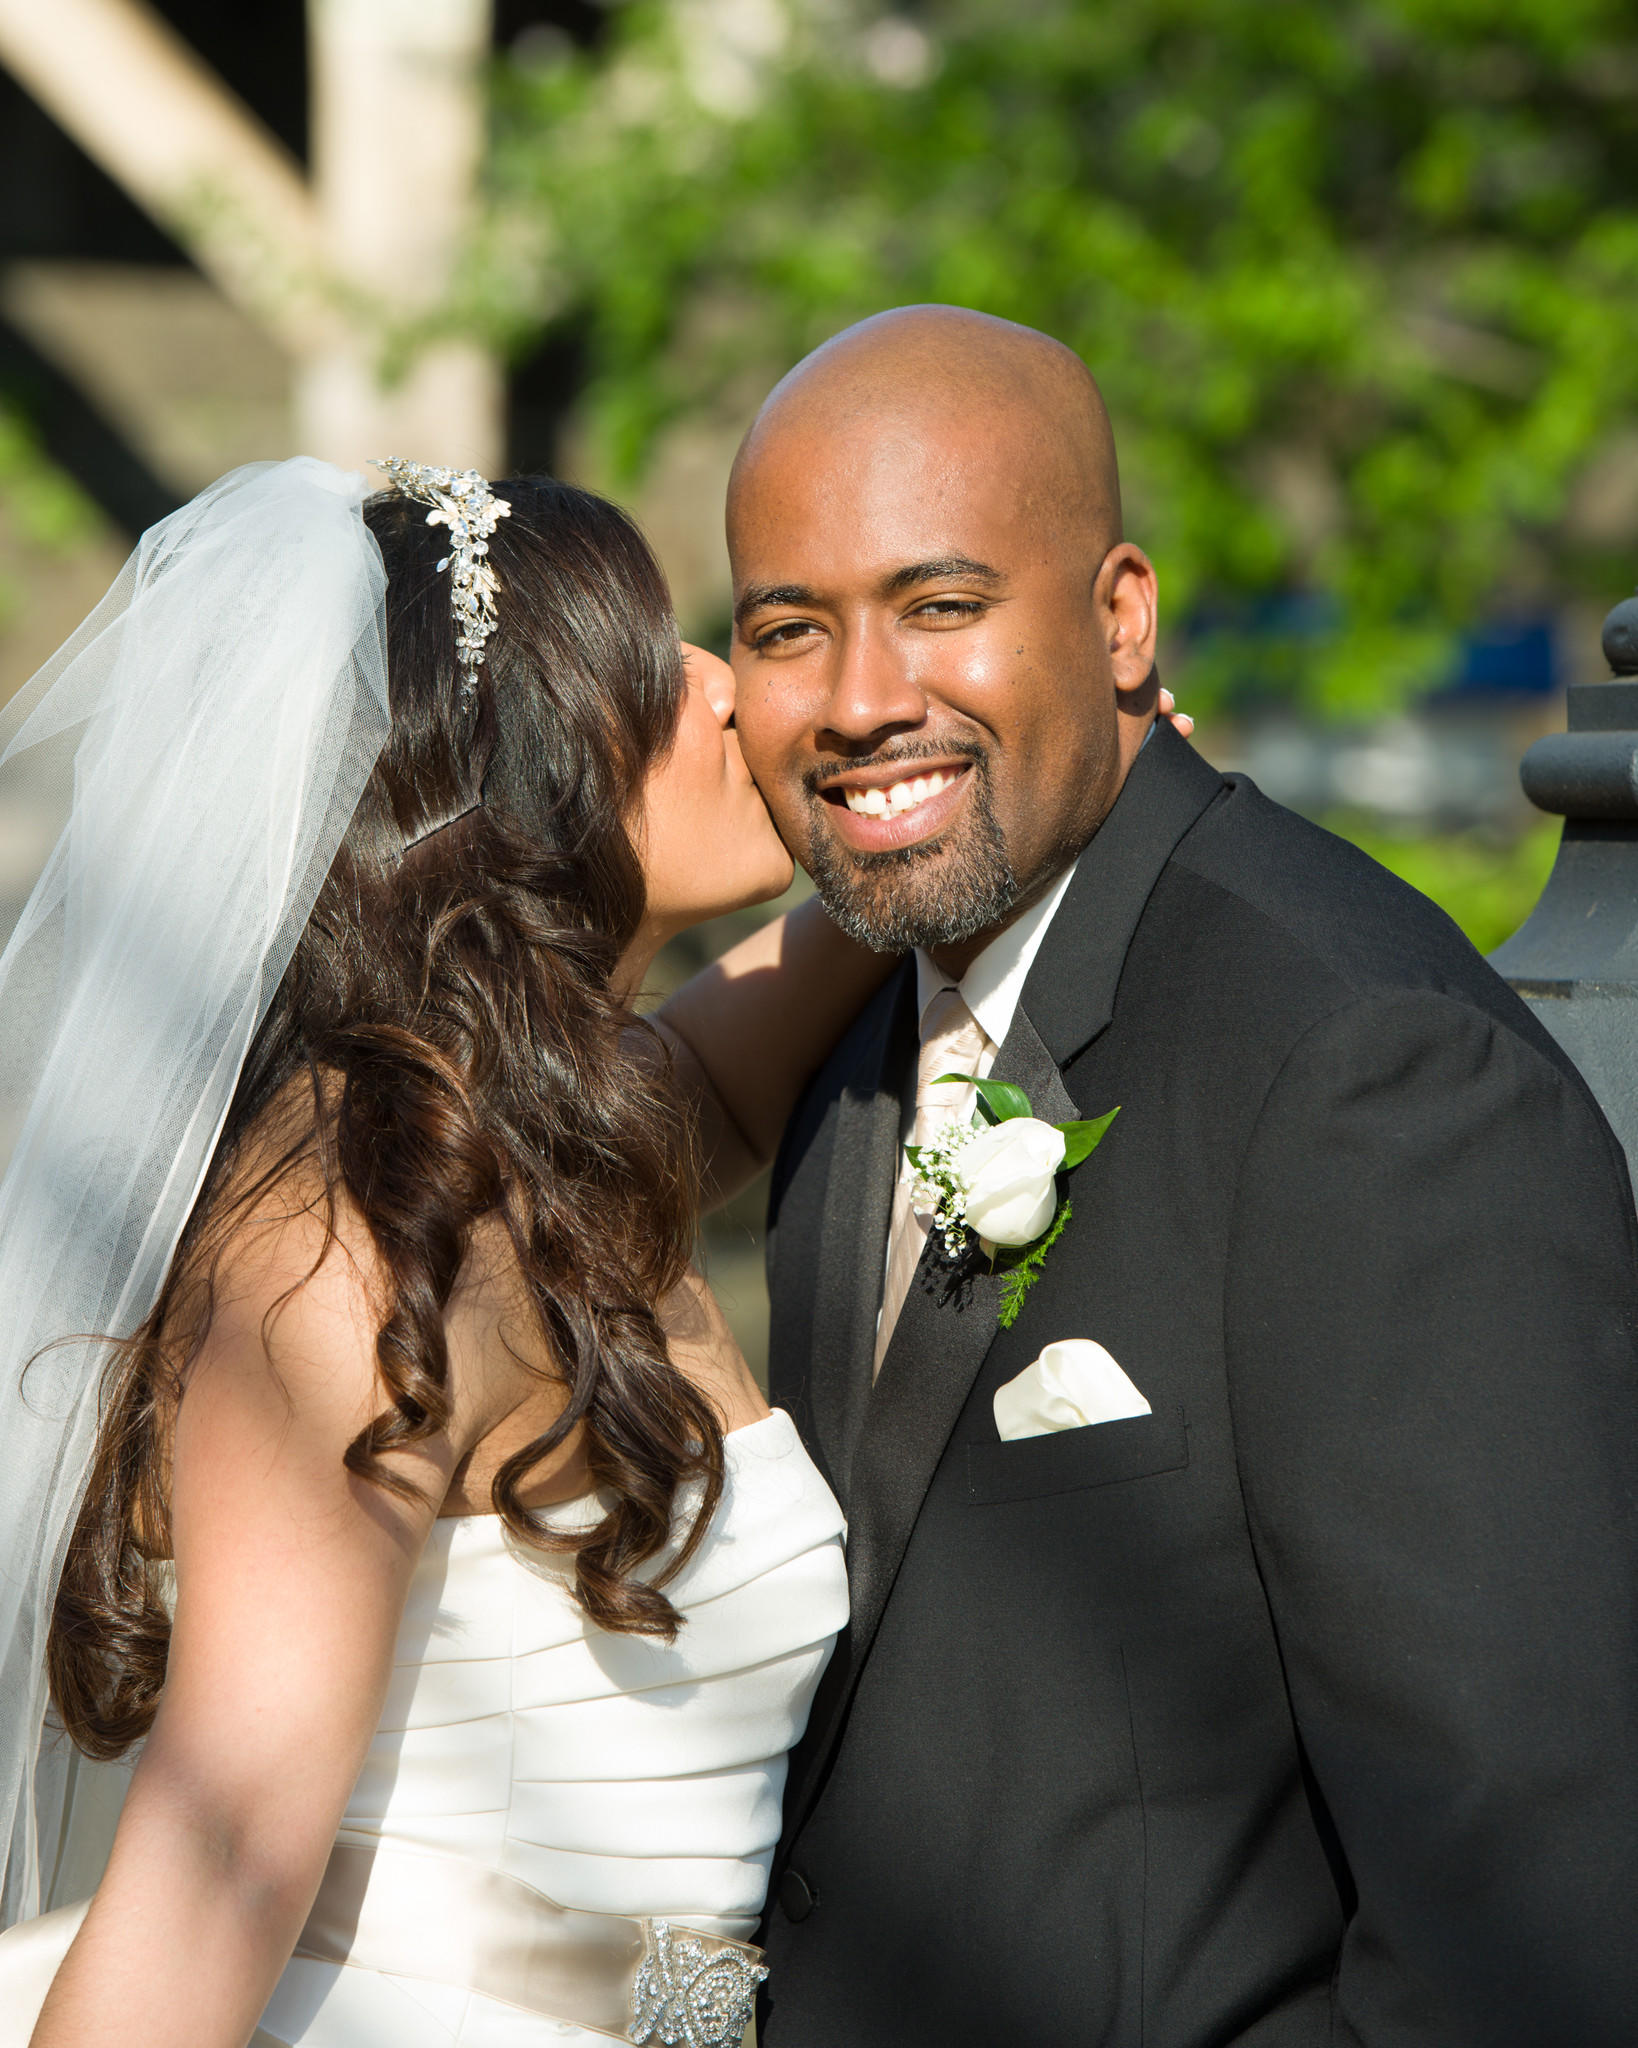 Priscilla Rodriguez and Michael Ruth met in 2011 when Priscilla's best friend married Michael's cousin.